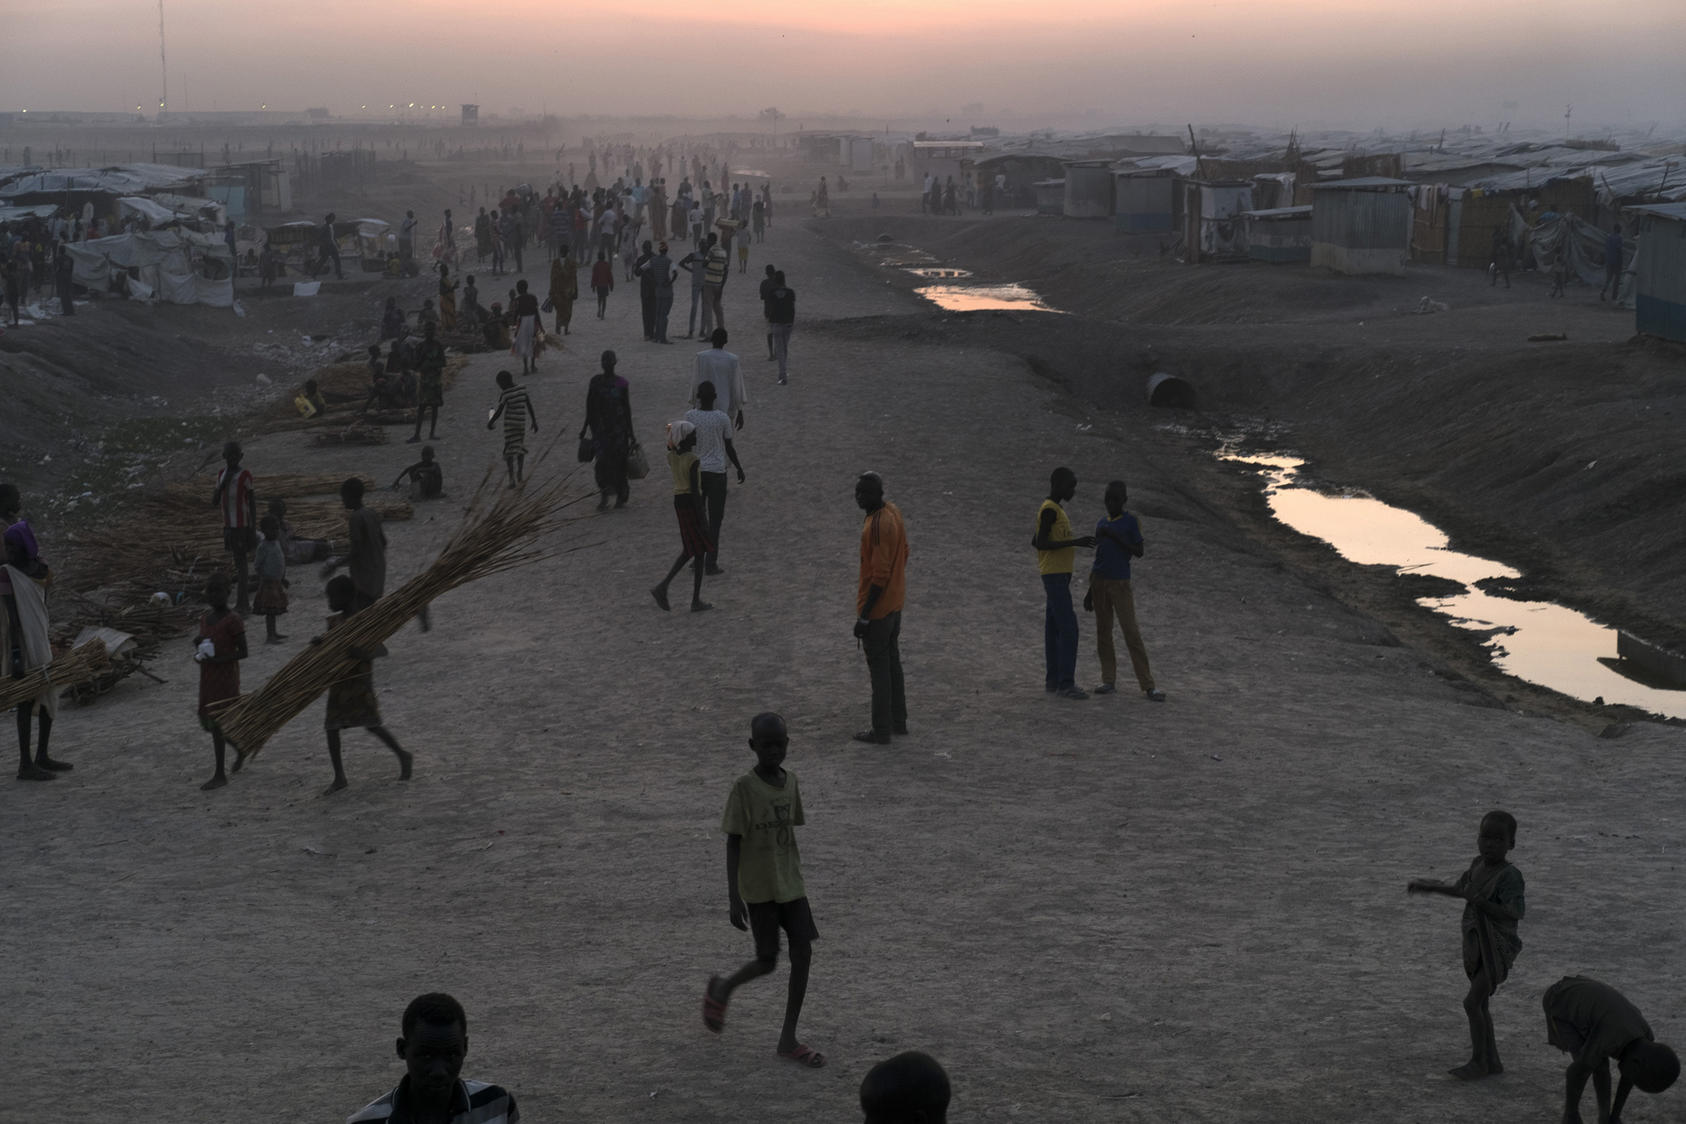 Displaced residents at a camp of makeshift tents and structures of sheet metal and plastic in Bentiu, South Sudan.